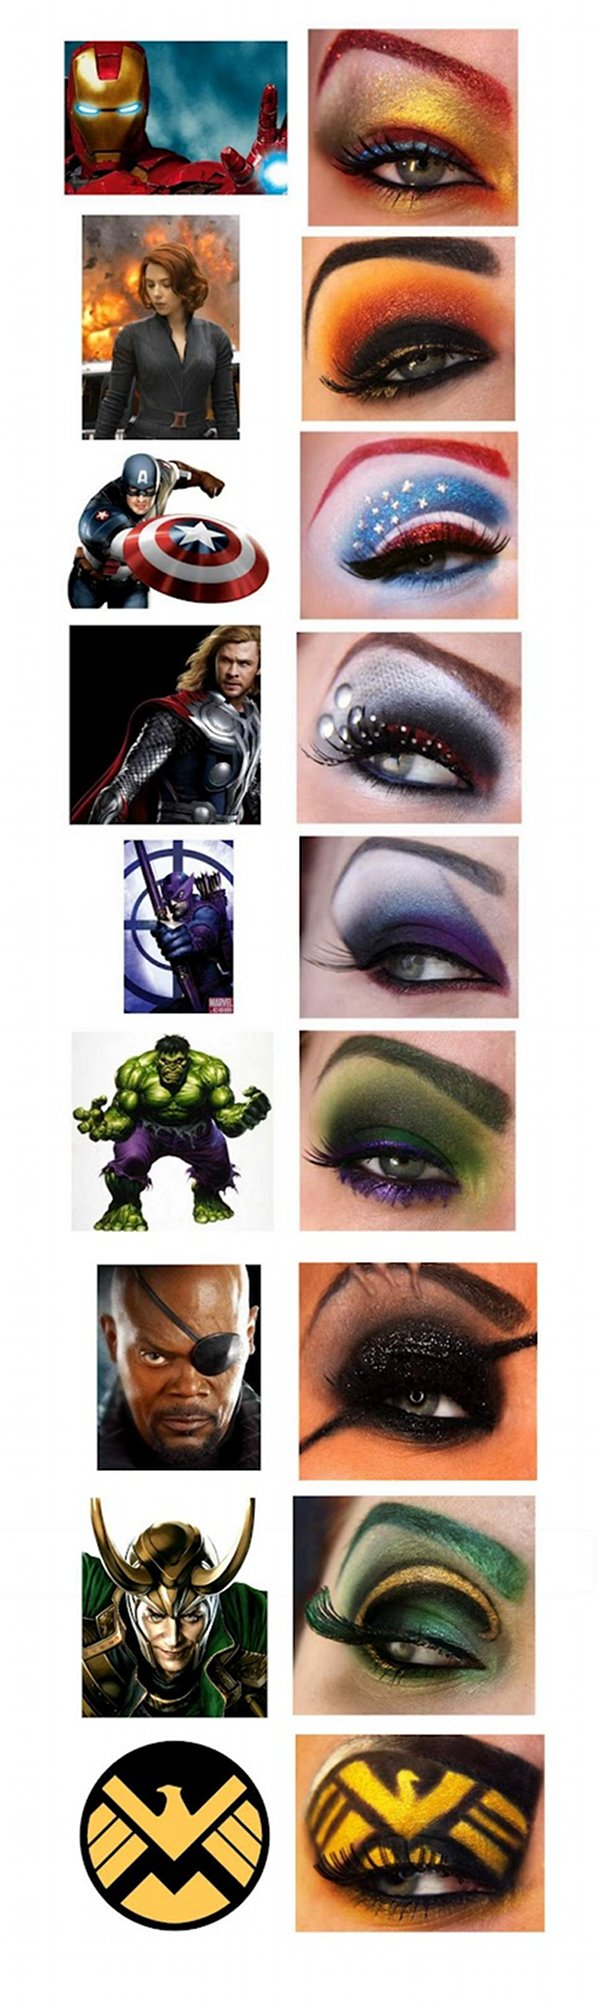 The Avengers - [Maquillage] Cosplay pour les yeux